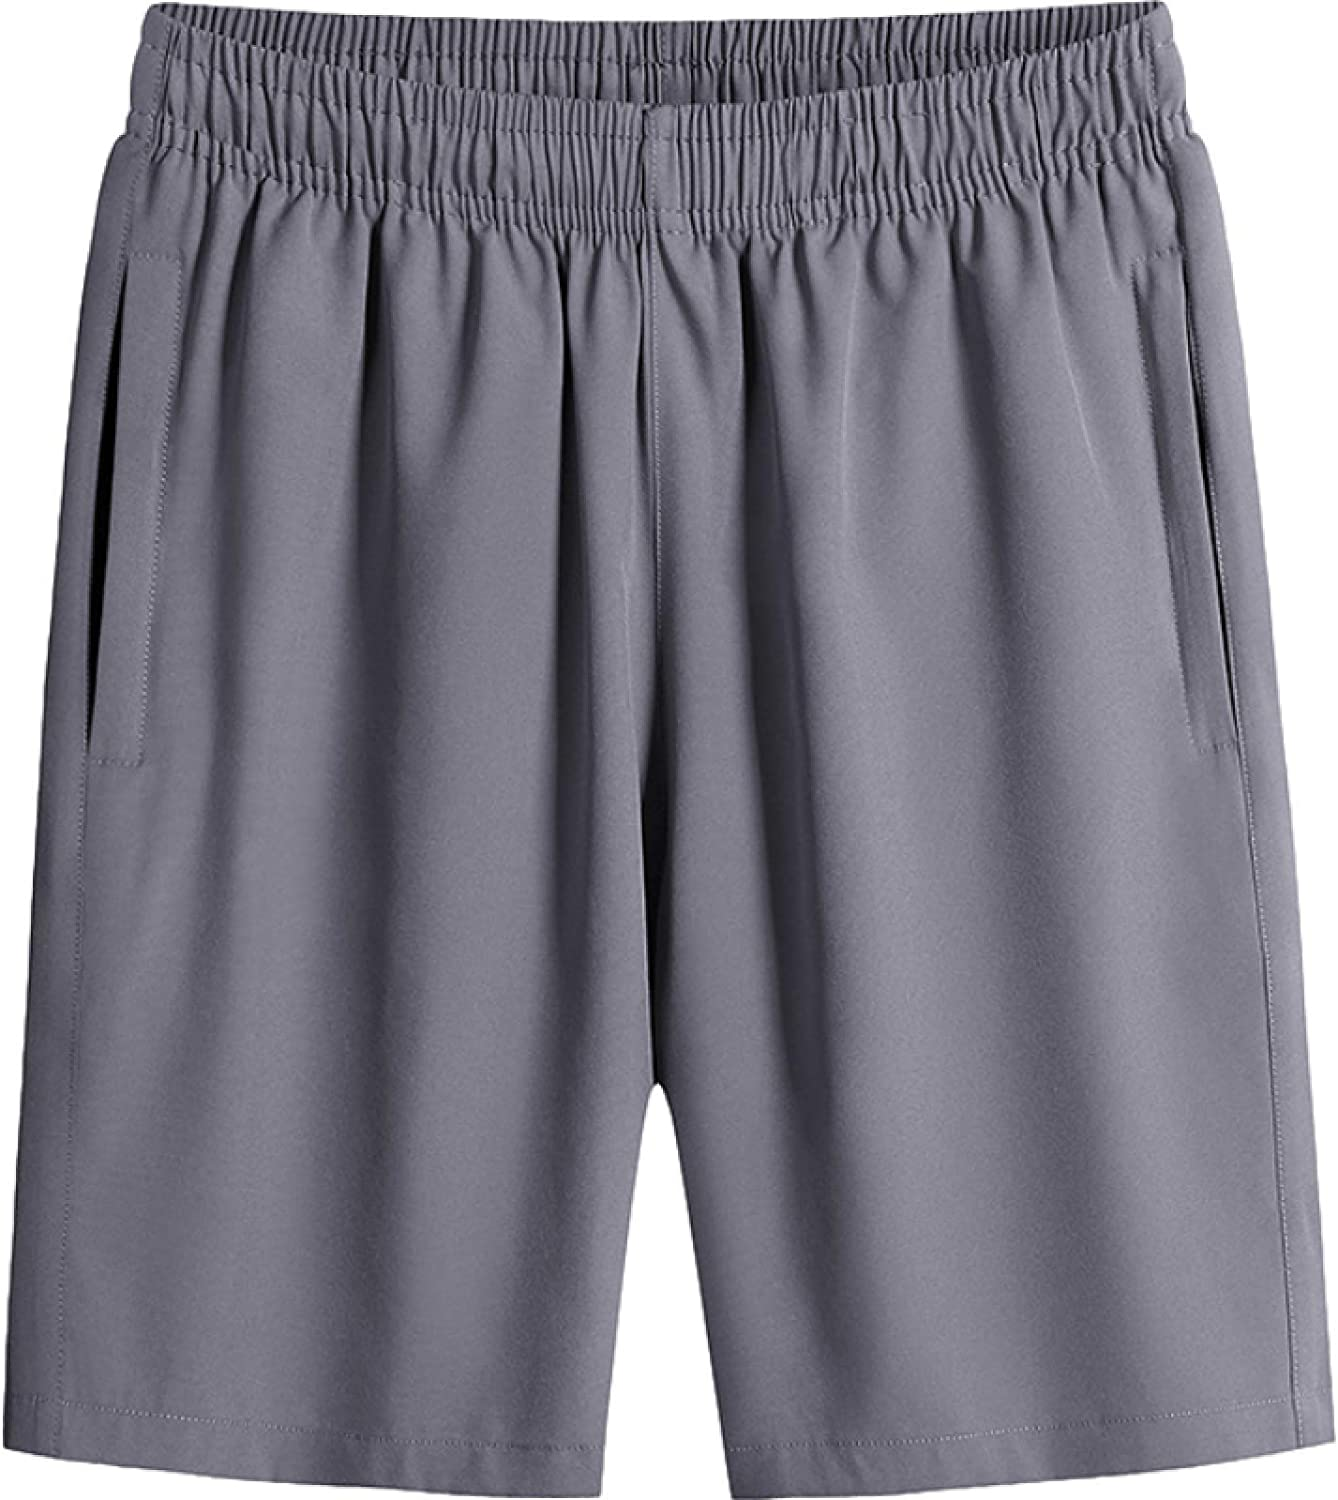 Segindy Men's Quick Dry Shorts Summer Fashion Solid Color Large